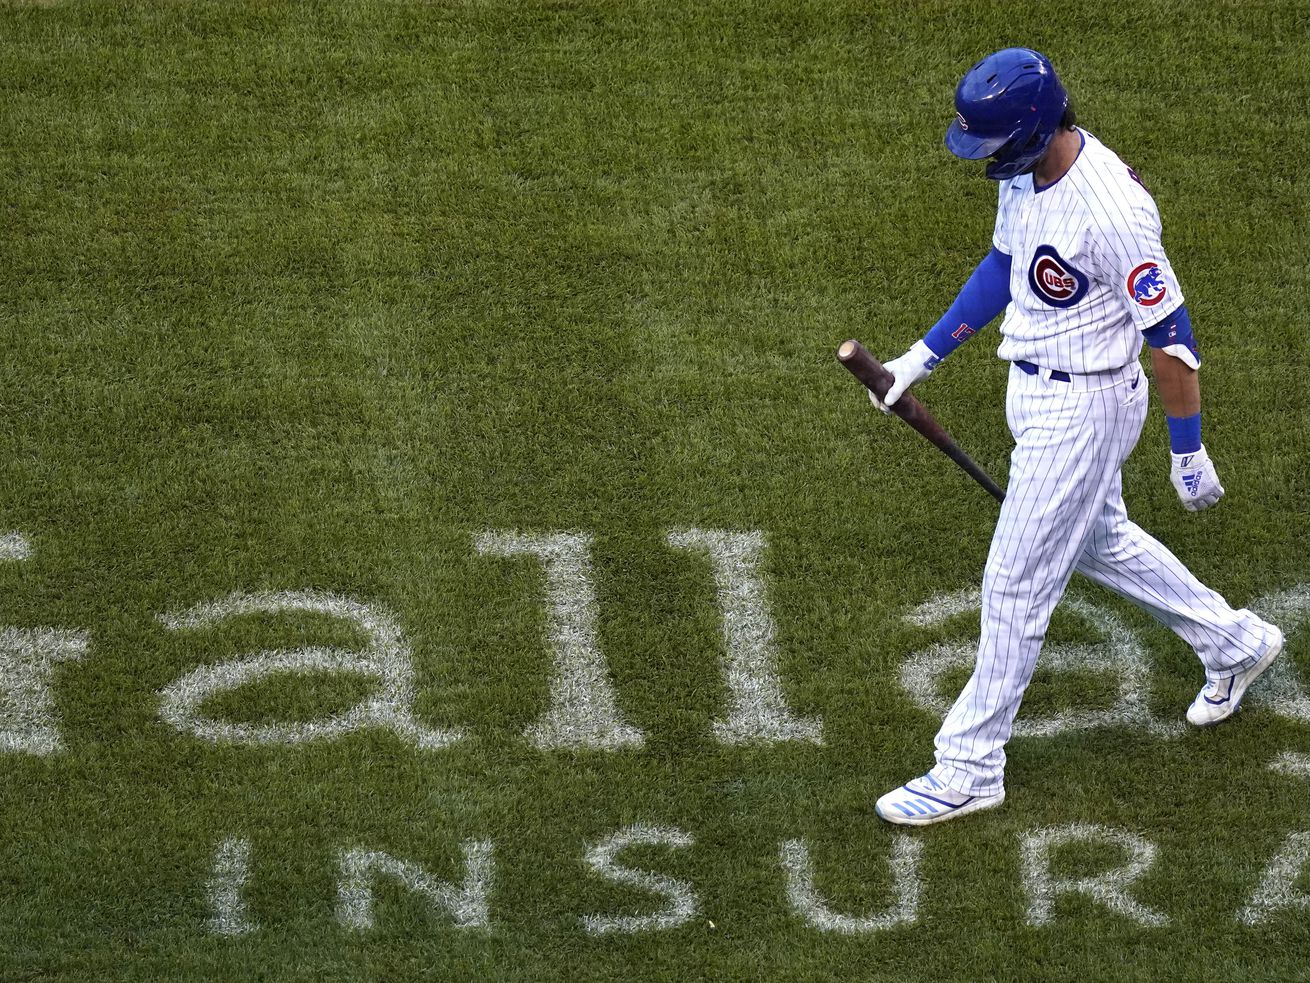 Cubs lose to Cardinals as division lead dwindles